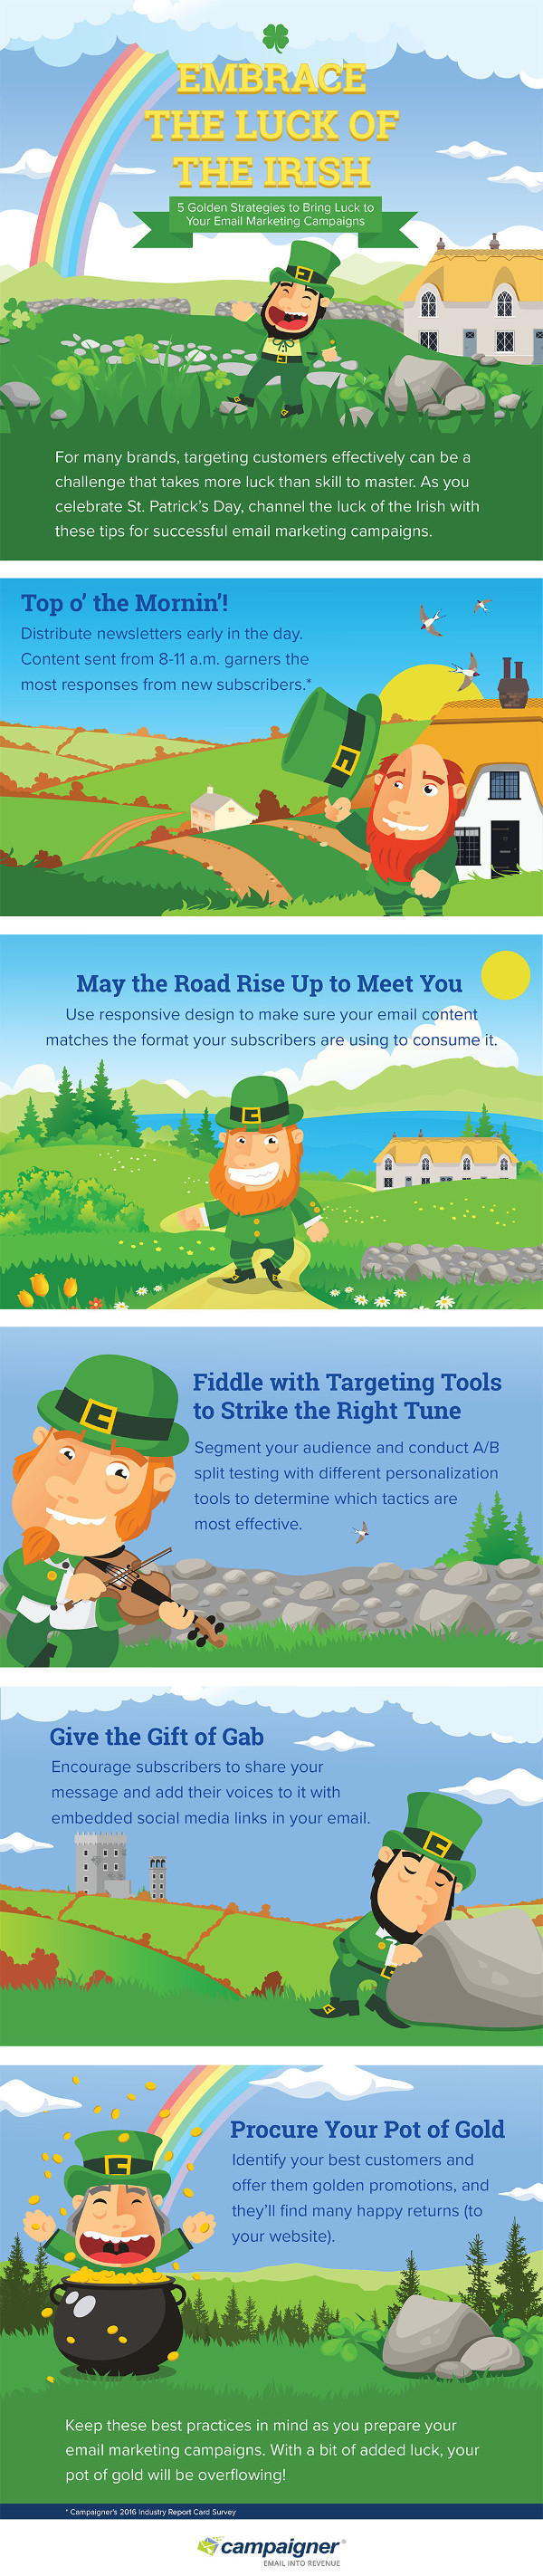 Five Golden Strategies to Bring Luck to Your Email Campaigns